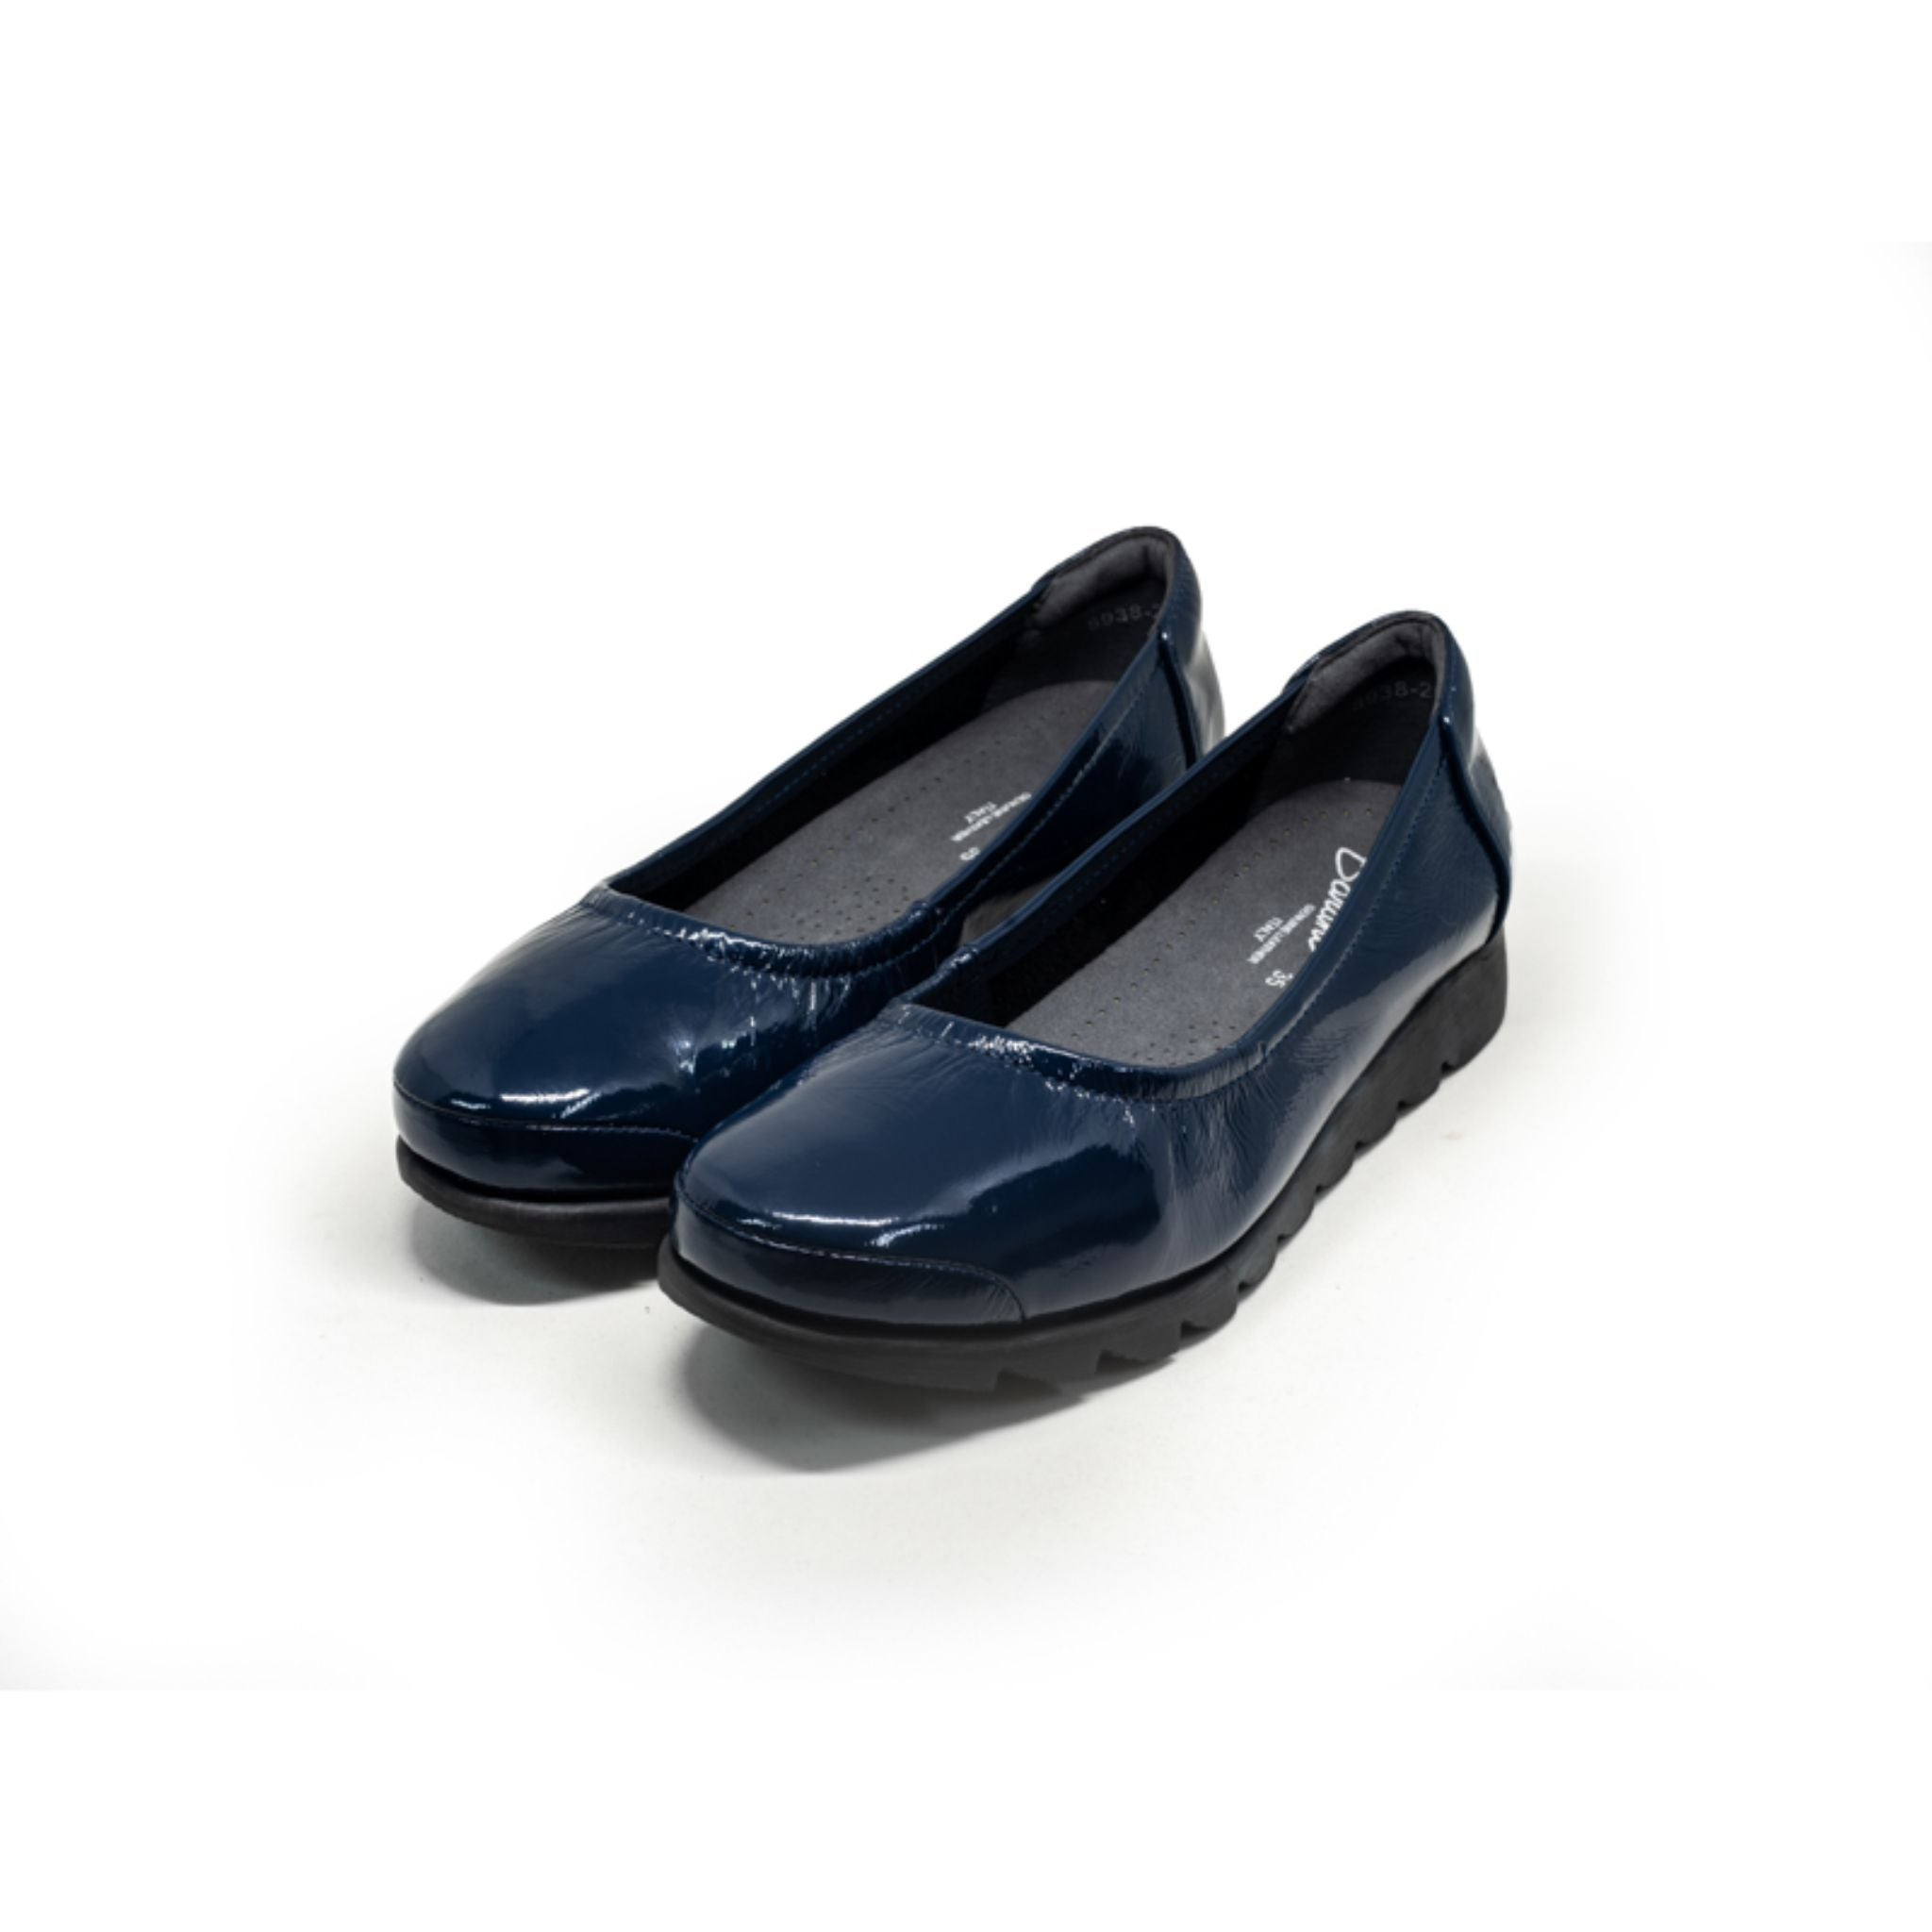 Barani Patent Leather Pumps Ballet Flats 8938-205 Navy Patent